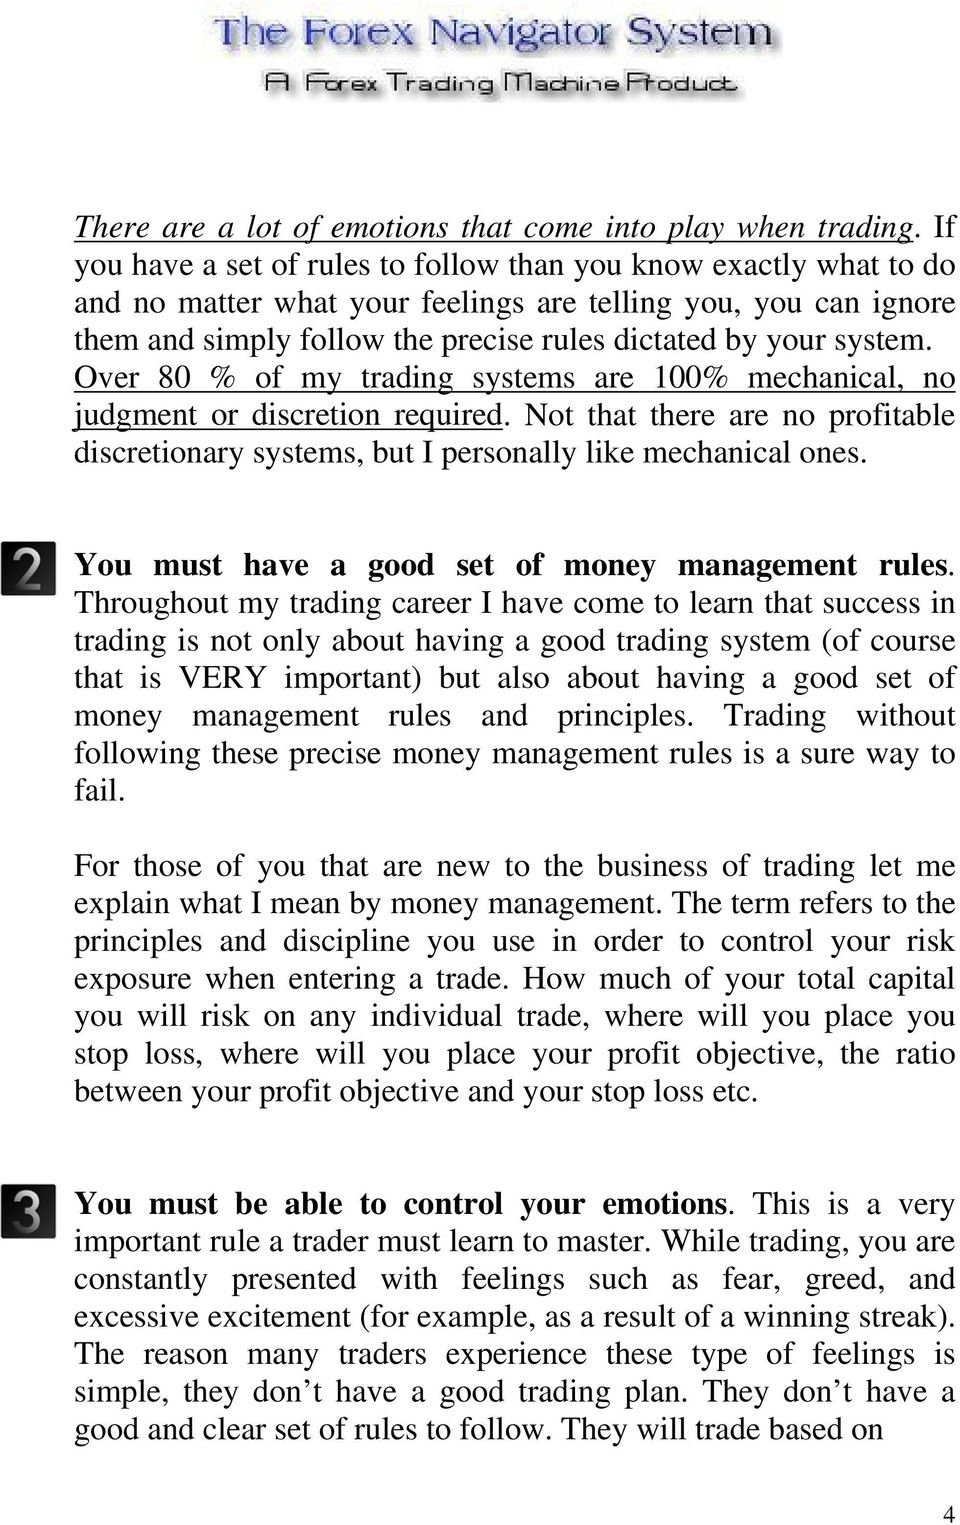 Over 80 % of my trading systems are 100% mechanical, no judgment or discretion required. Not that there are no profitable discretionary systems, but I personally like mechanical ones.